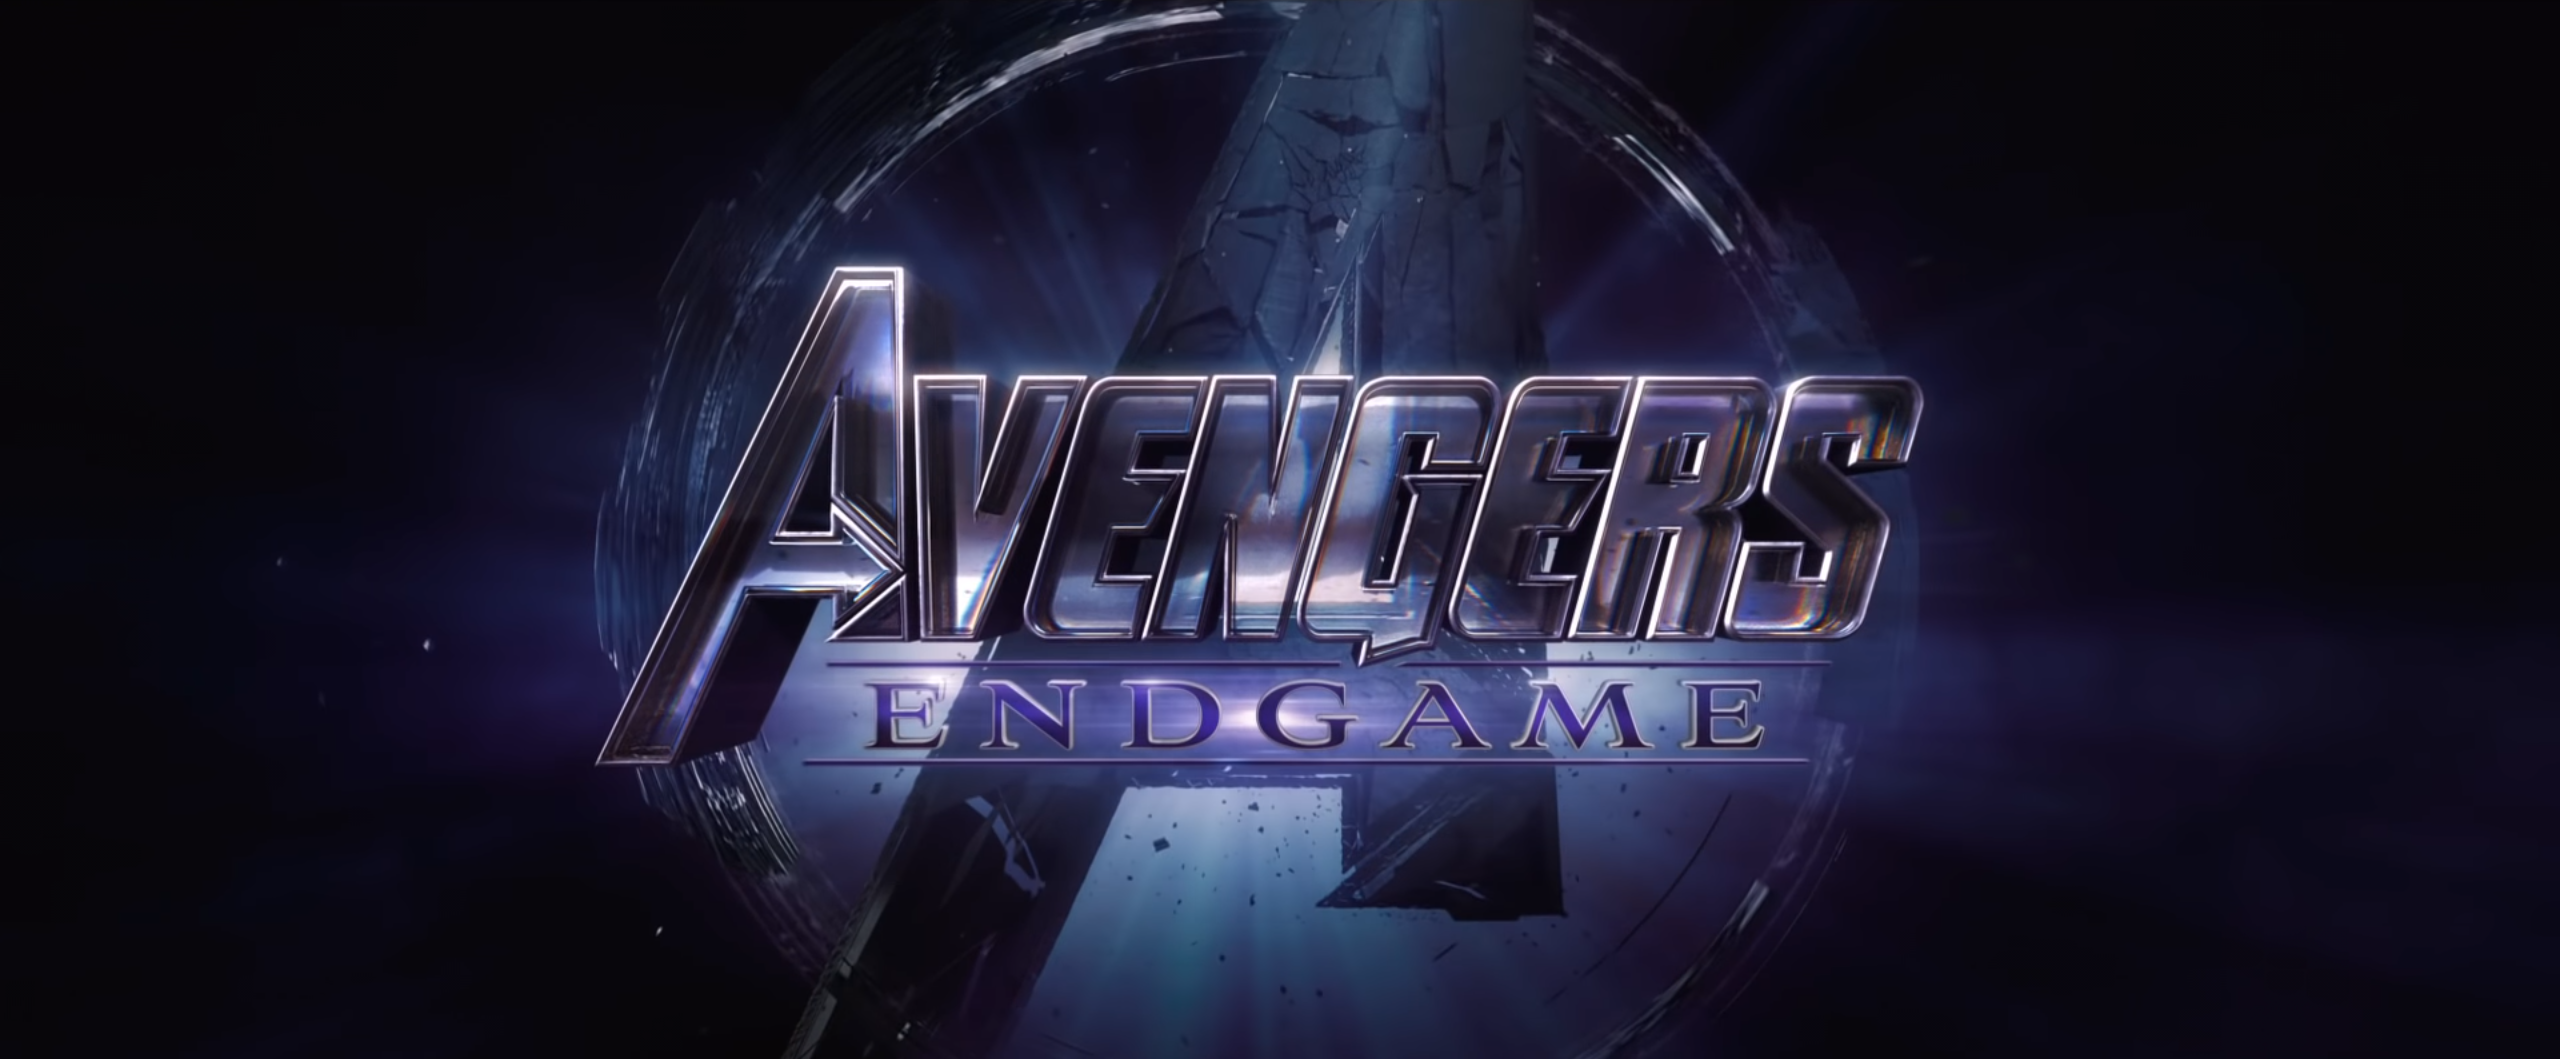 All The Details We Spotted In The Dramatic Avengers: Endgame